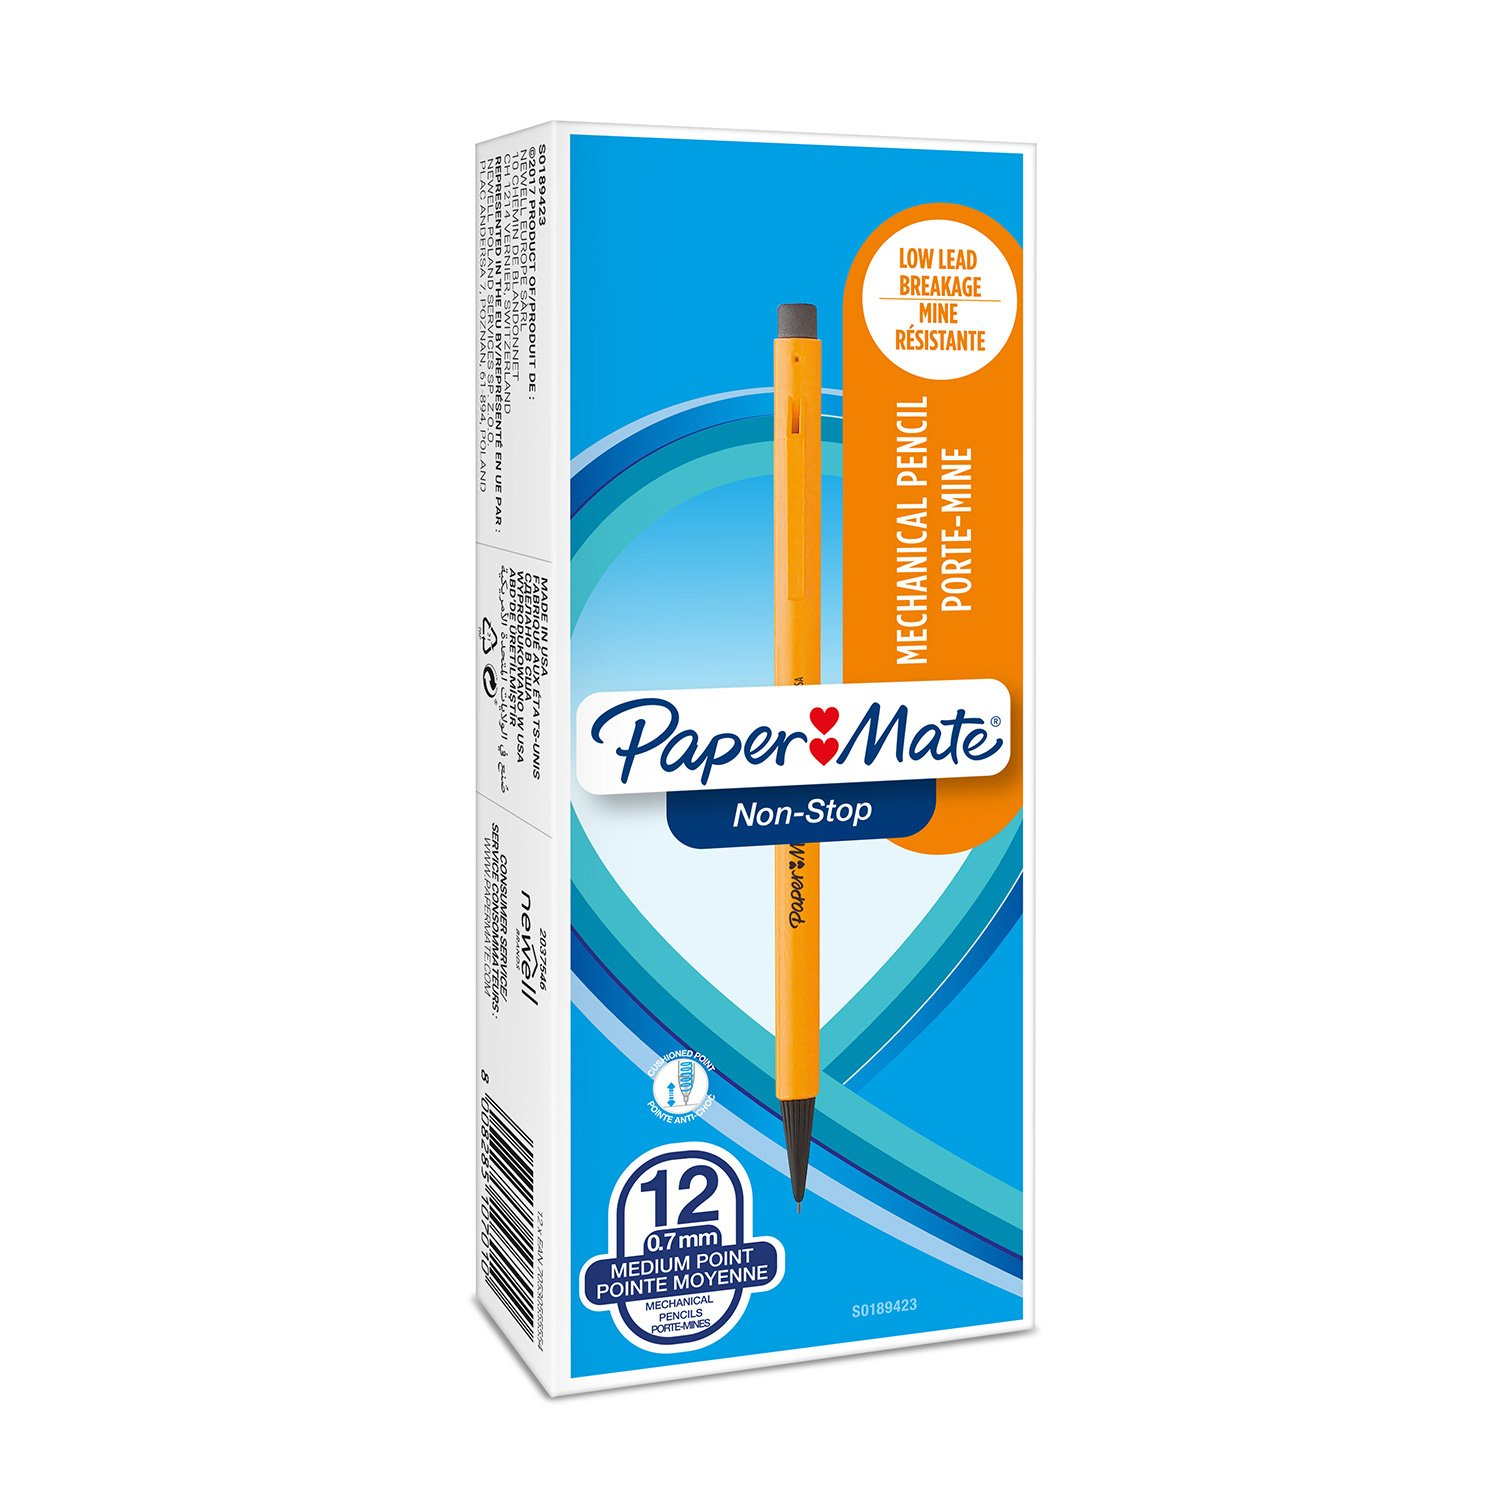 PaperMate 0.7 mm Non-Stop Mechanical Pencil, HB #2, Yellow Barrel, Box of 12